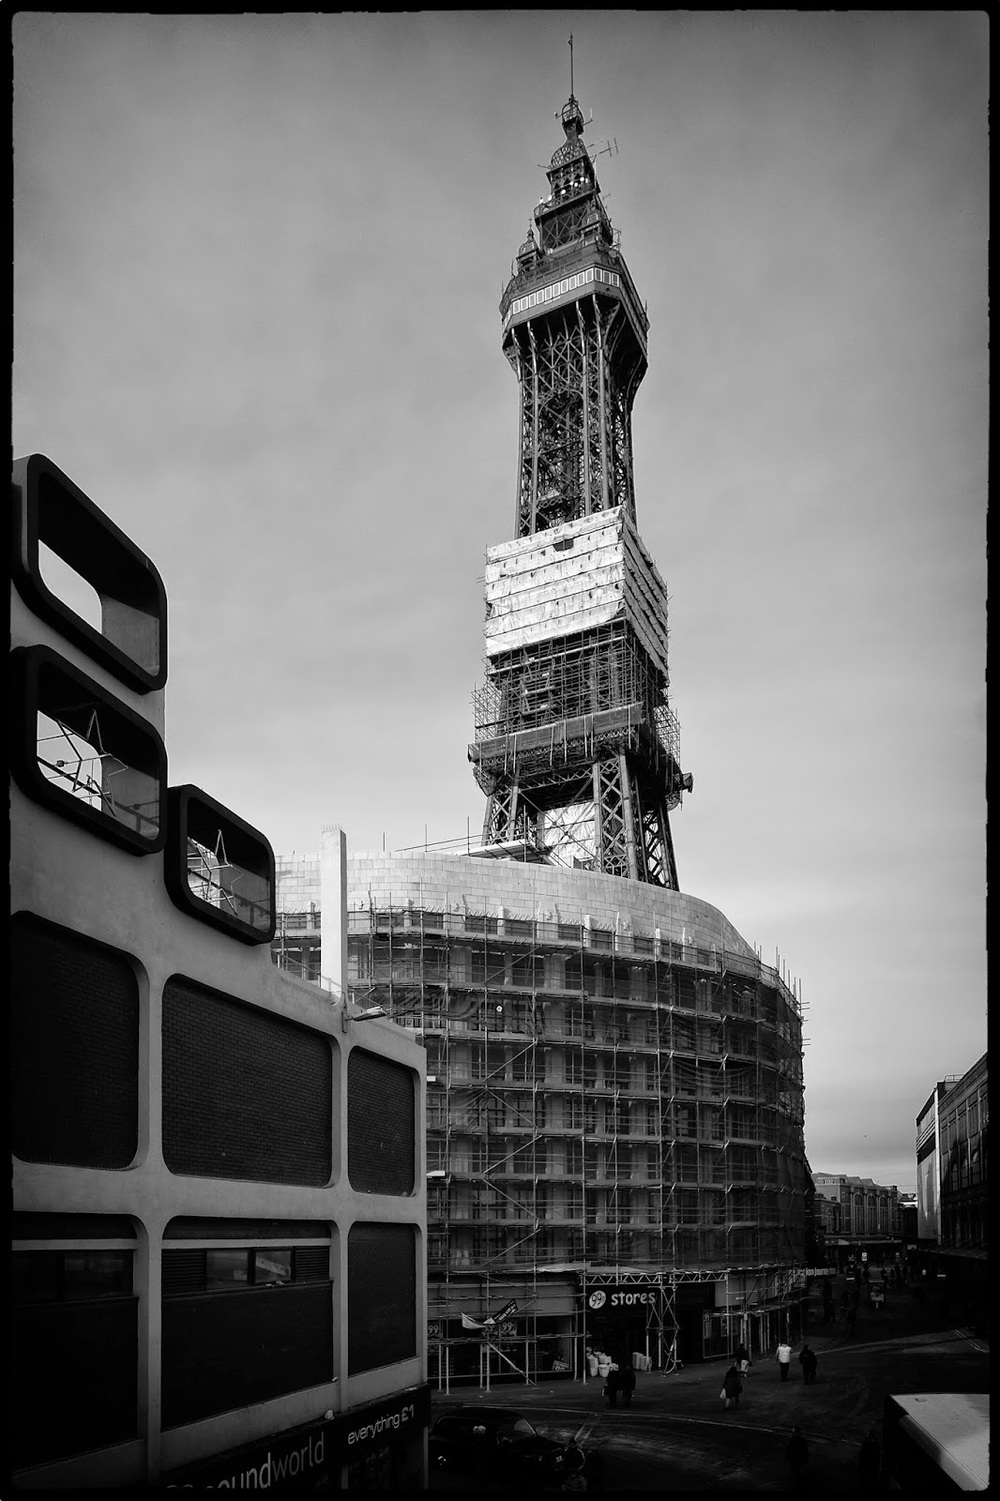 Blackpool tower lancashire black and white art photo scaffolding renovation fuji x-t1 art deco squares lights sandblasting